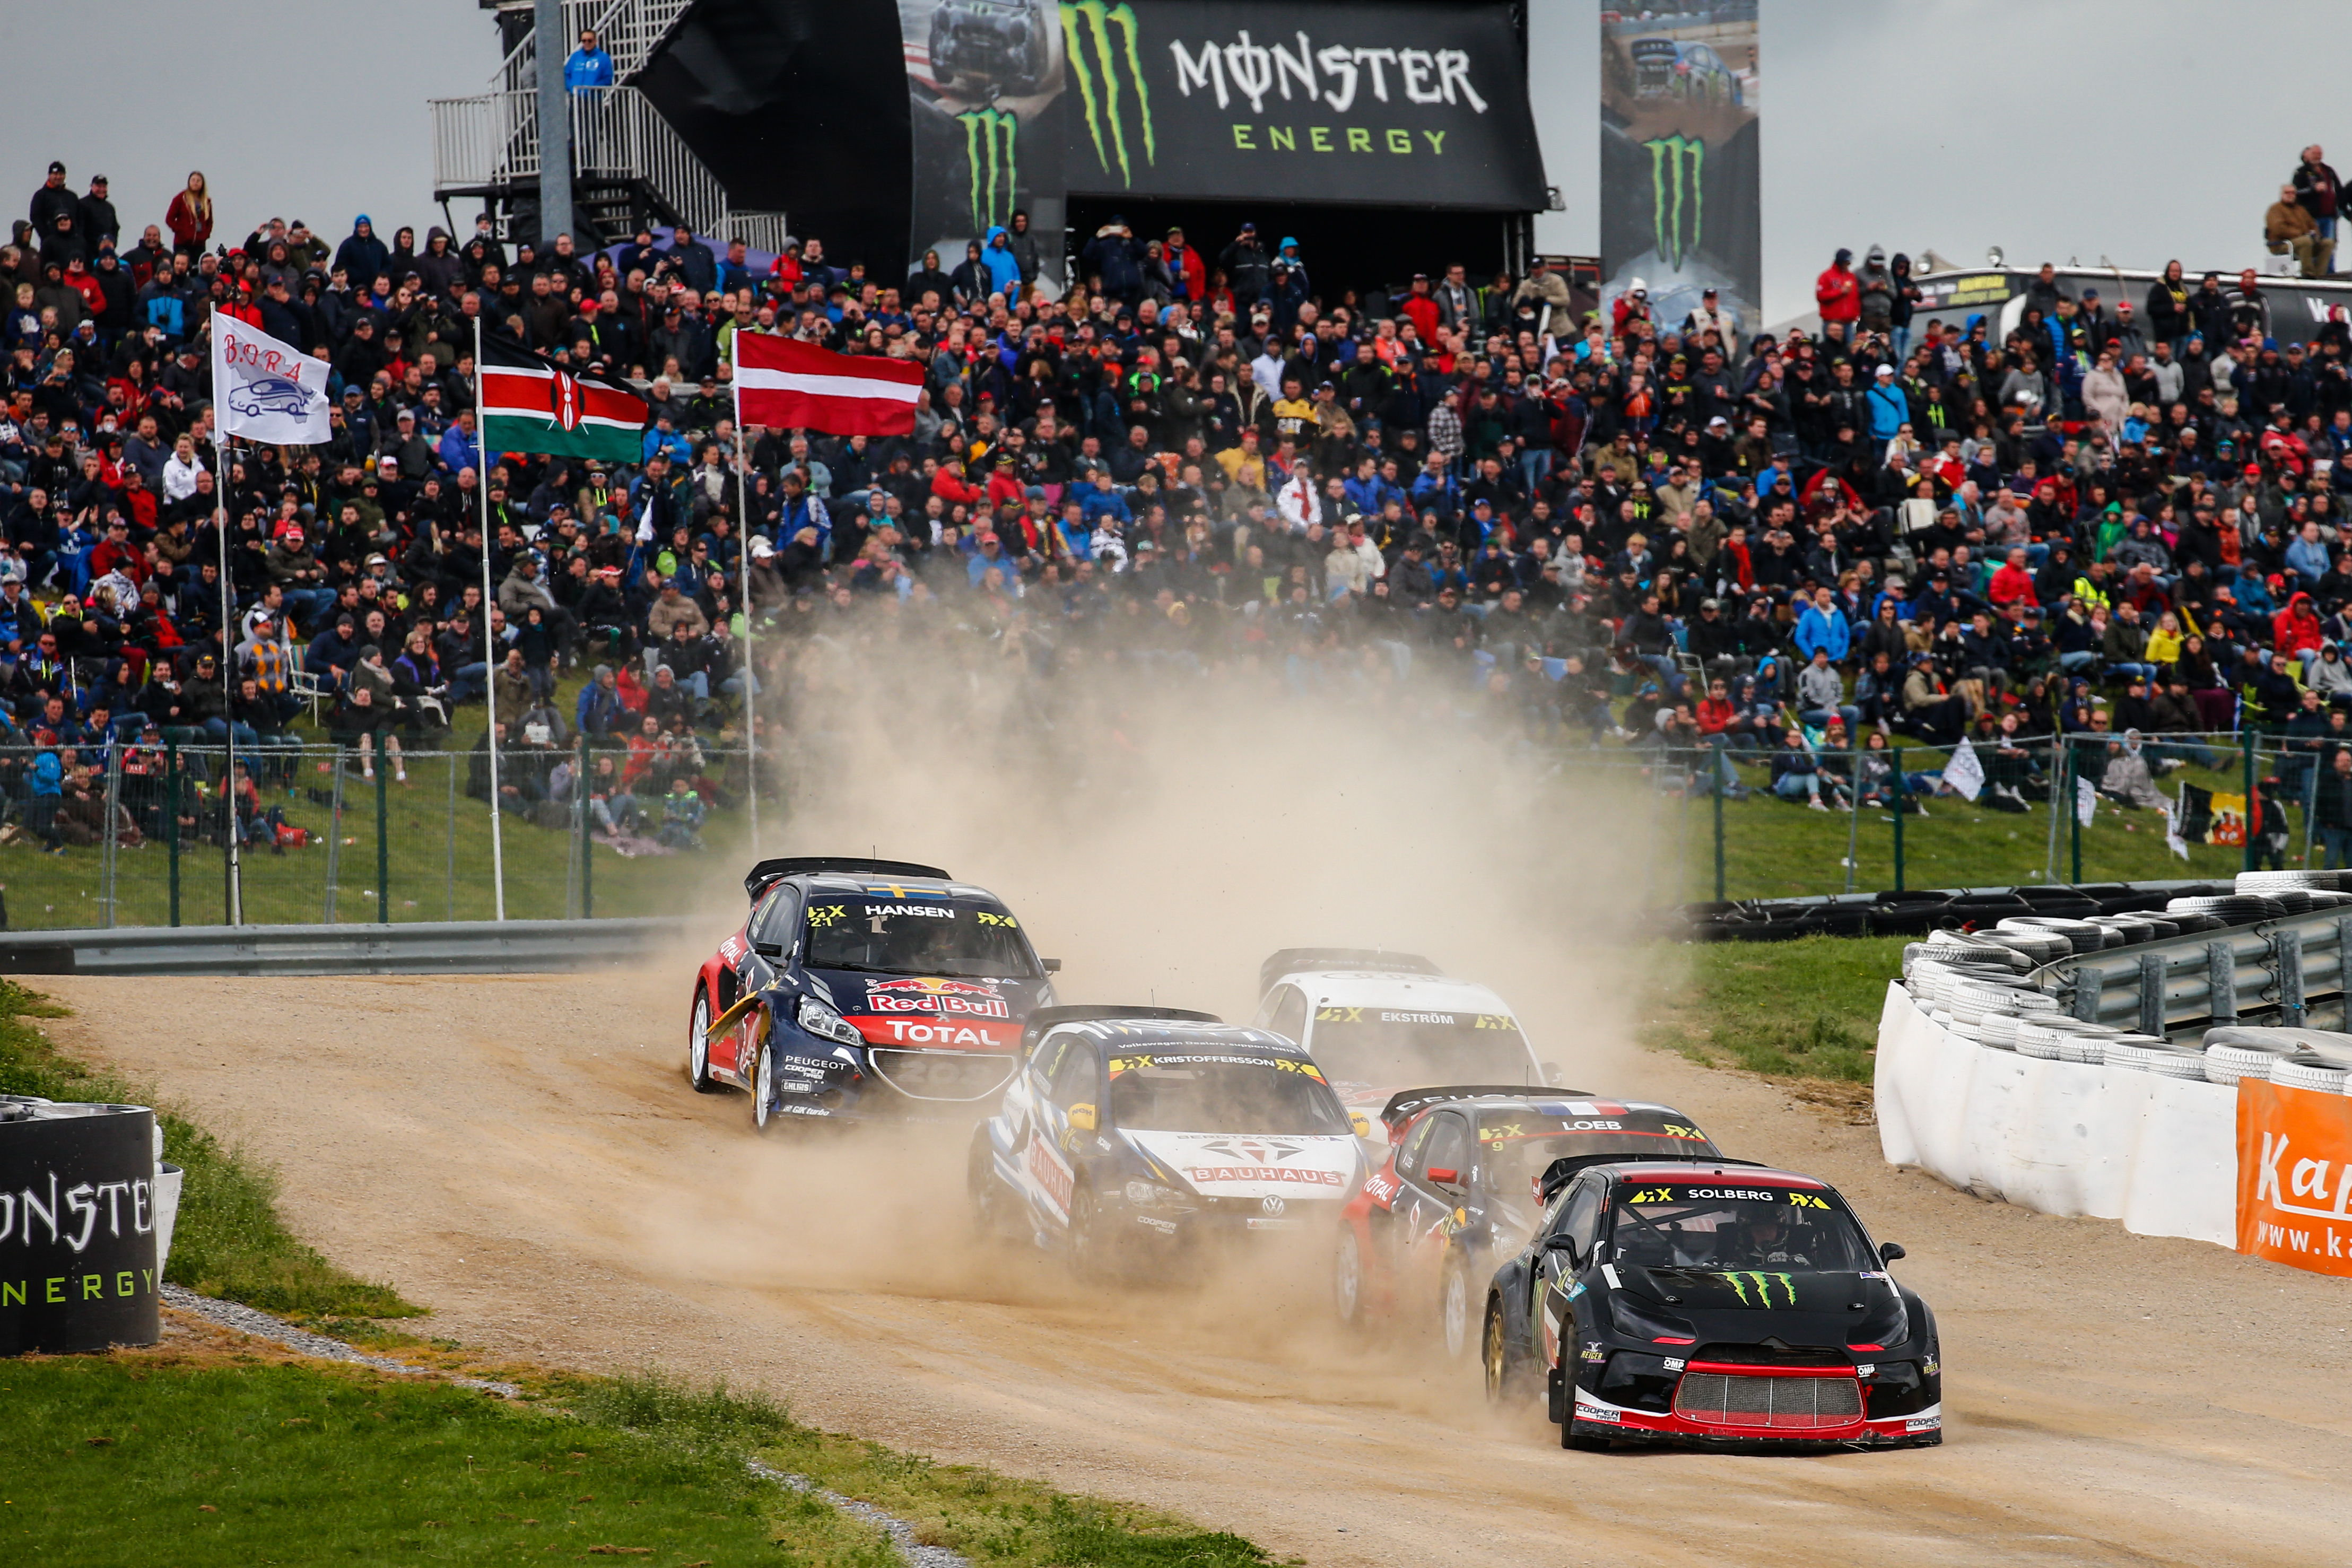 World RX - RX2 joins World RX for first timers world championship ...